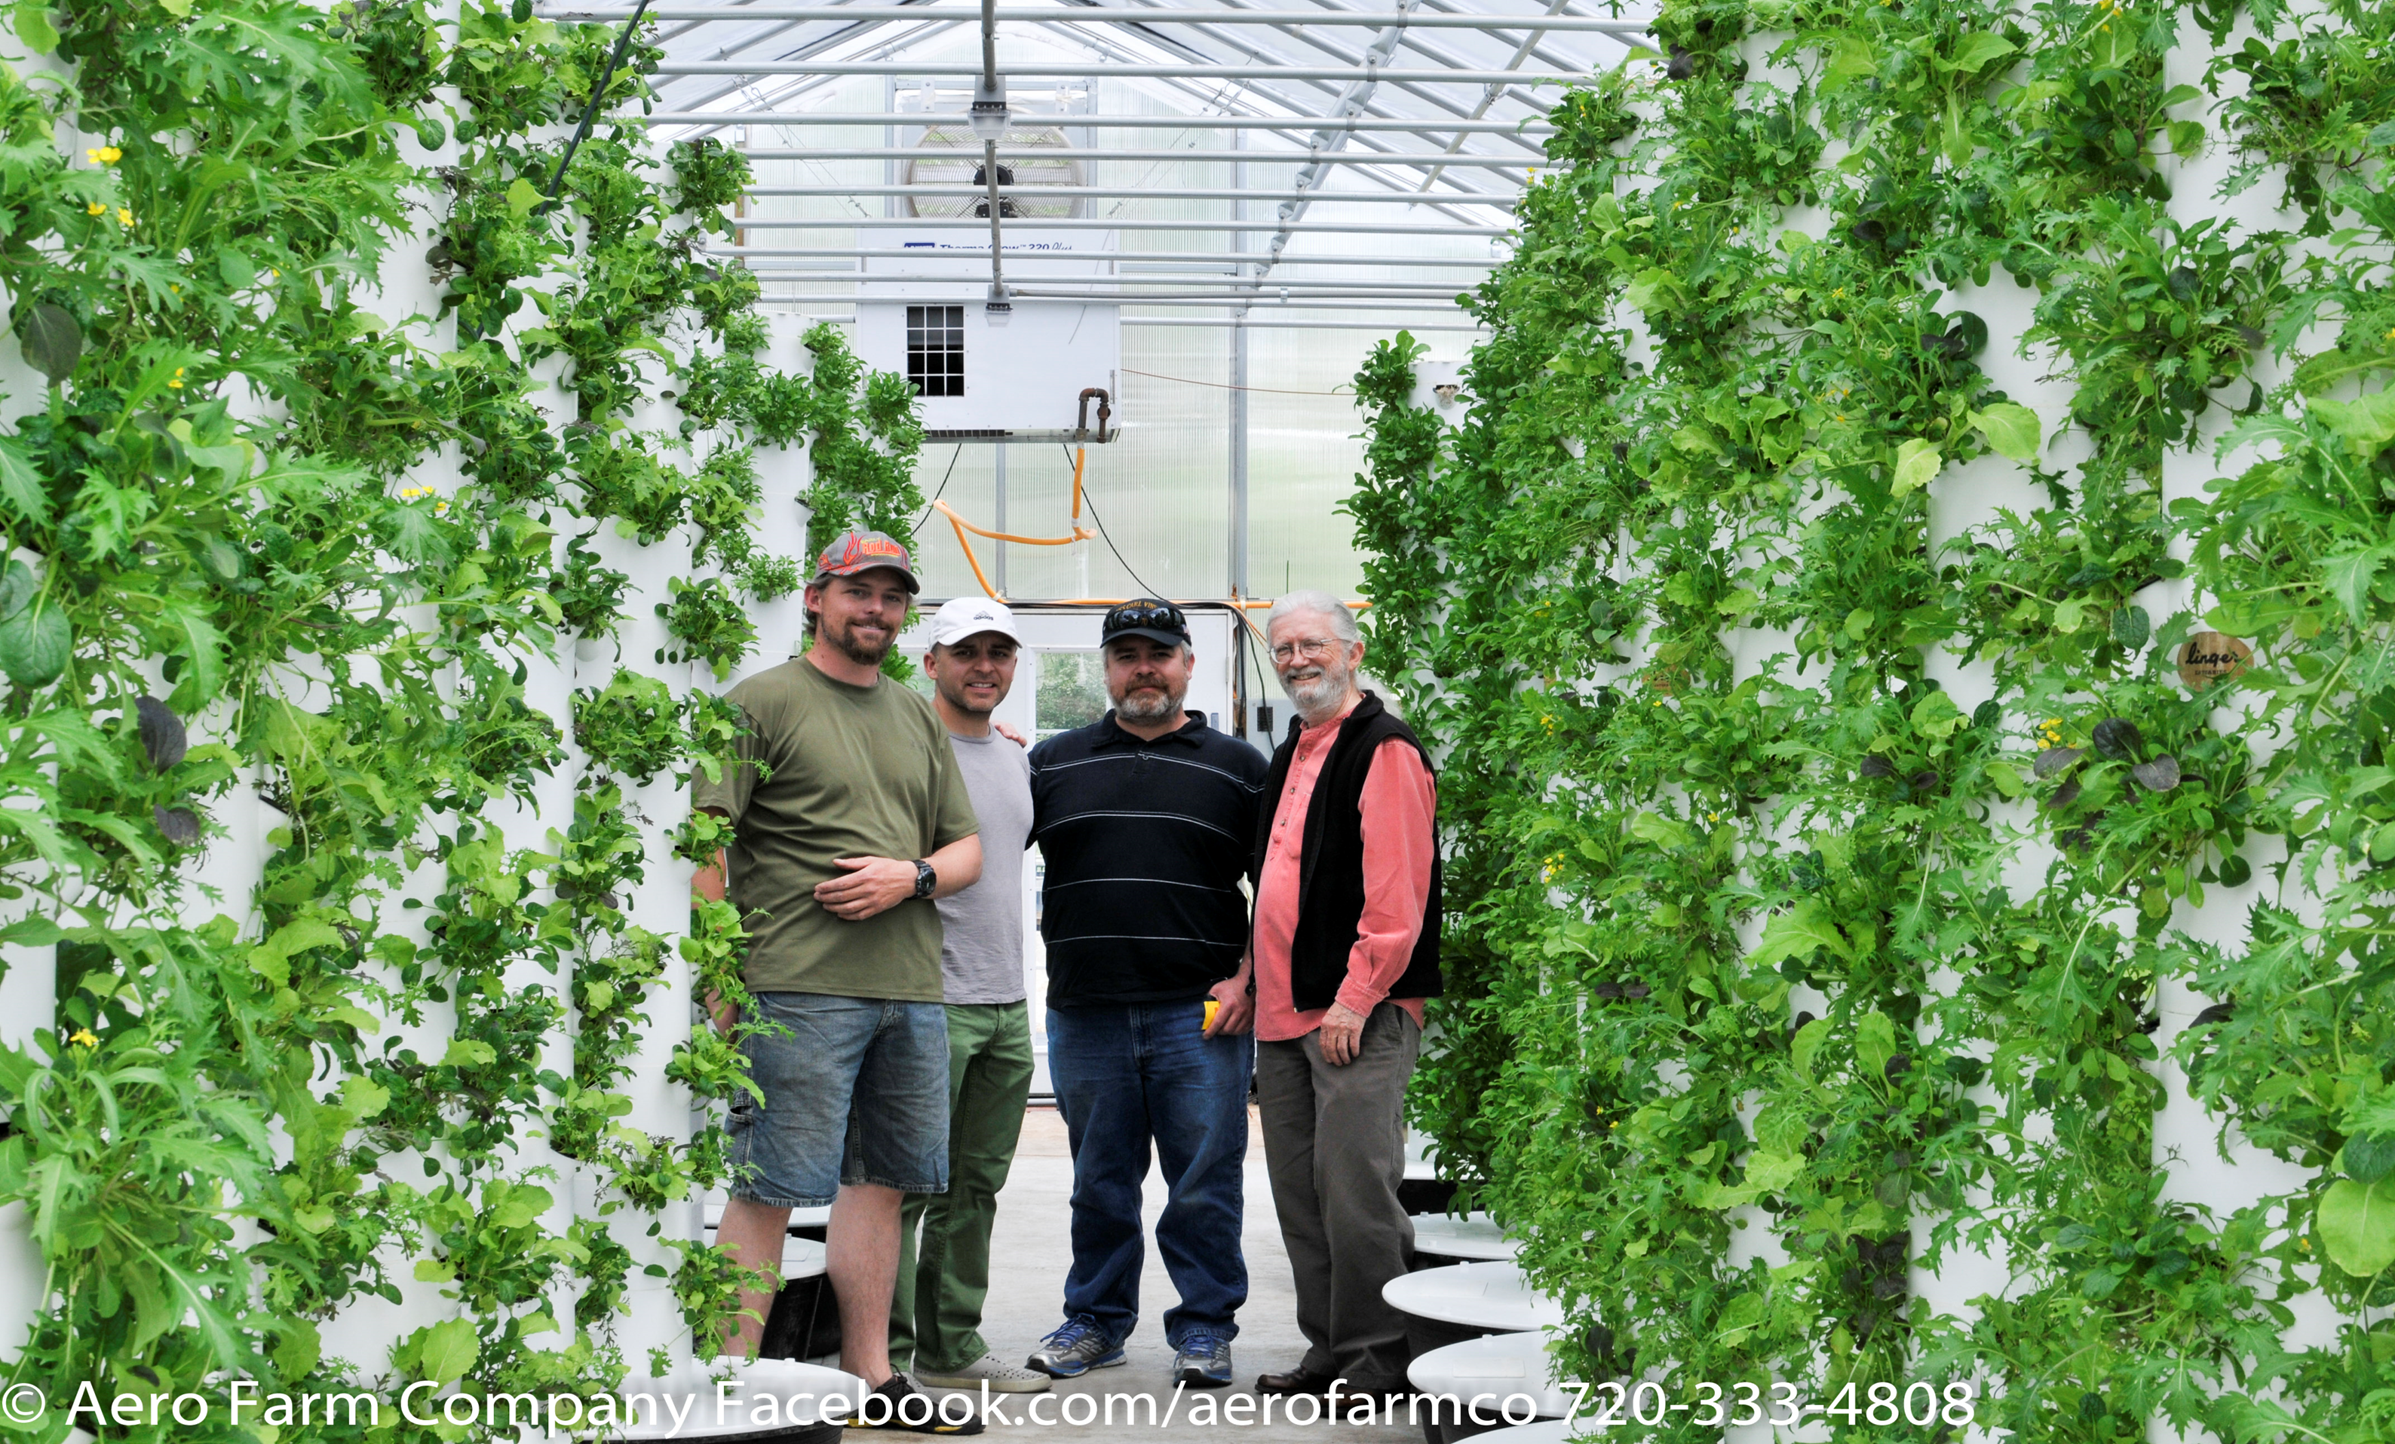 <p>Evan Premer, owner of Aero Farm Co. in Lakewood, Colo., gives a tour to farmers interested in vertical aeroponics.</p>